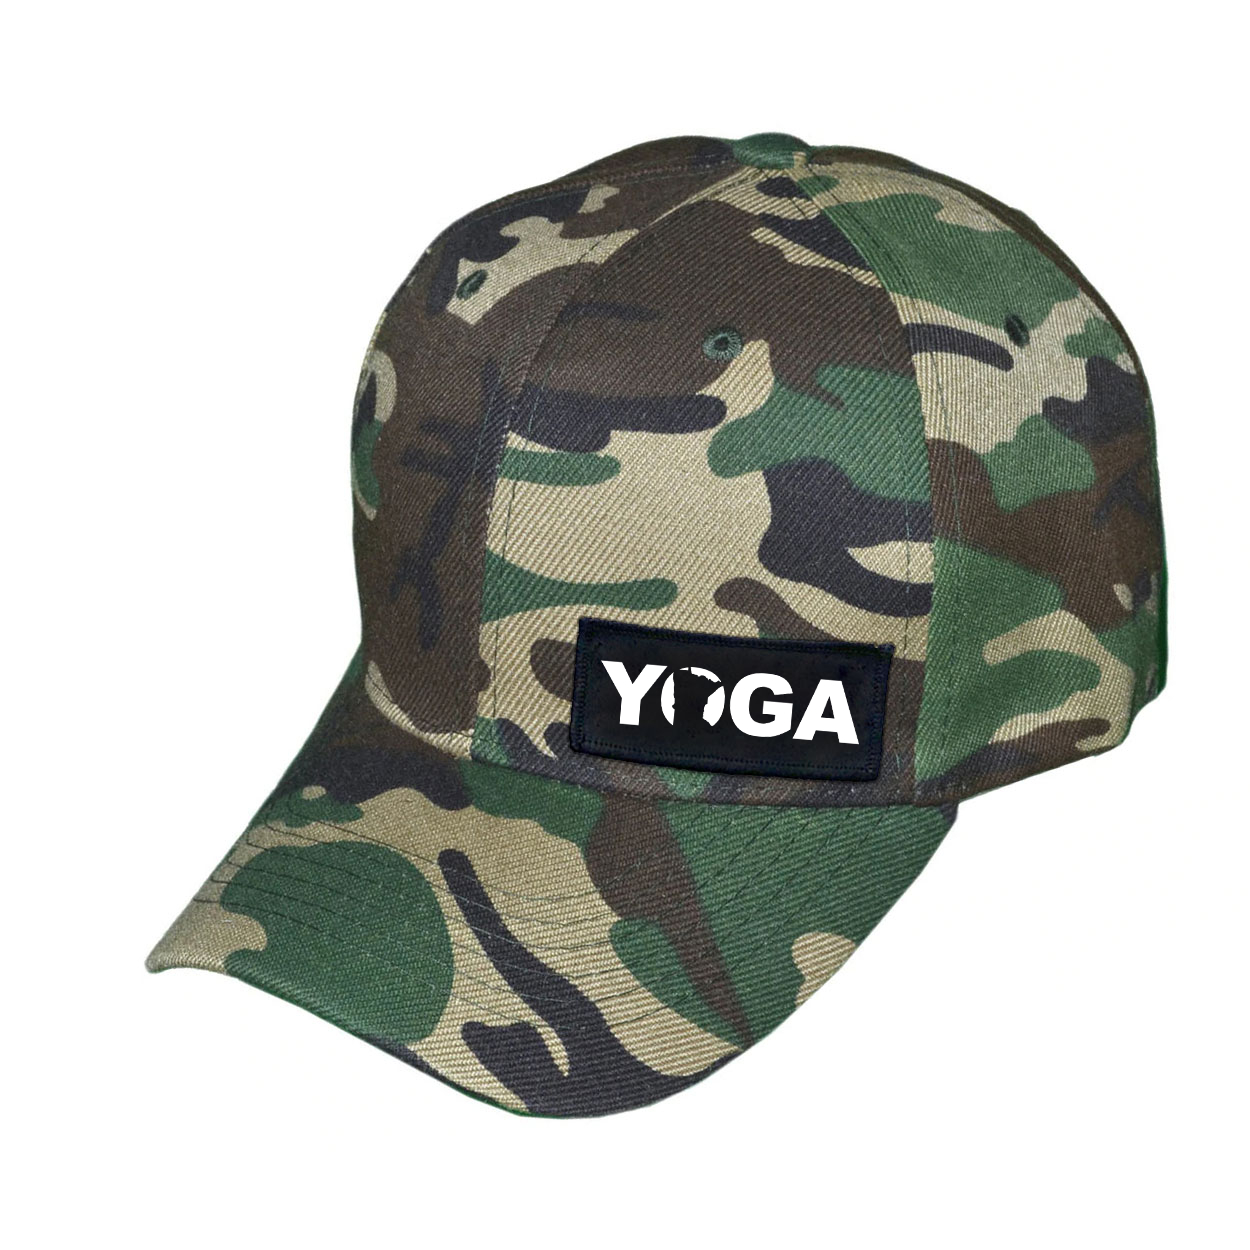 Yoga Minnesota Night Out Woven Patch Hat Camo (White Logo)